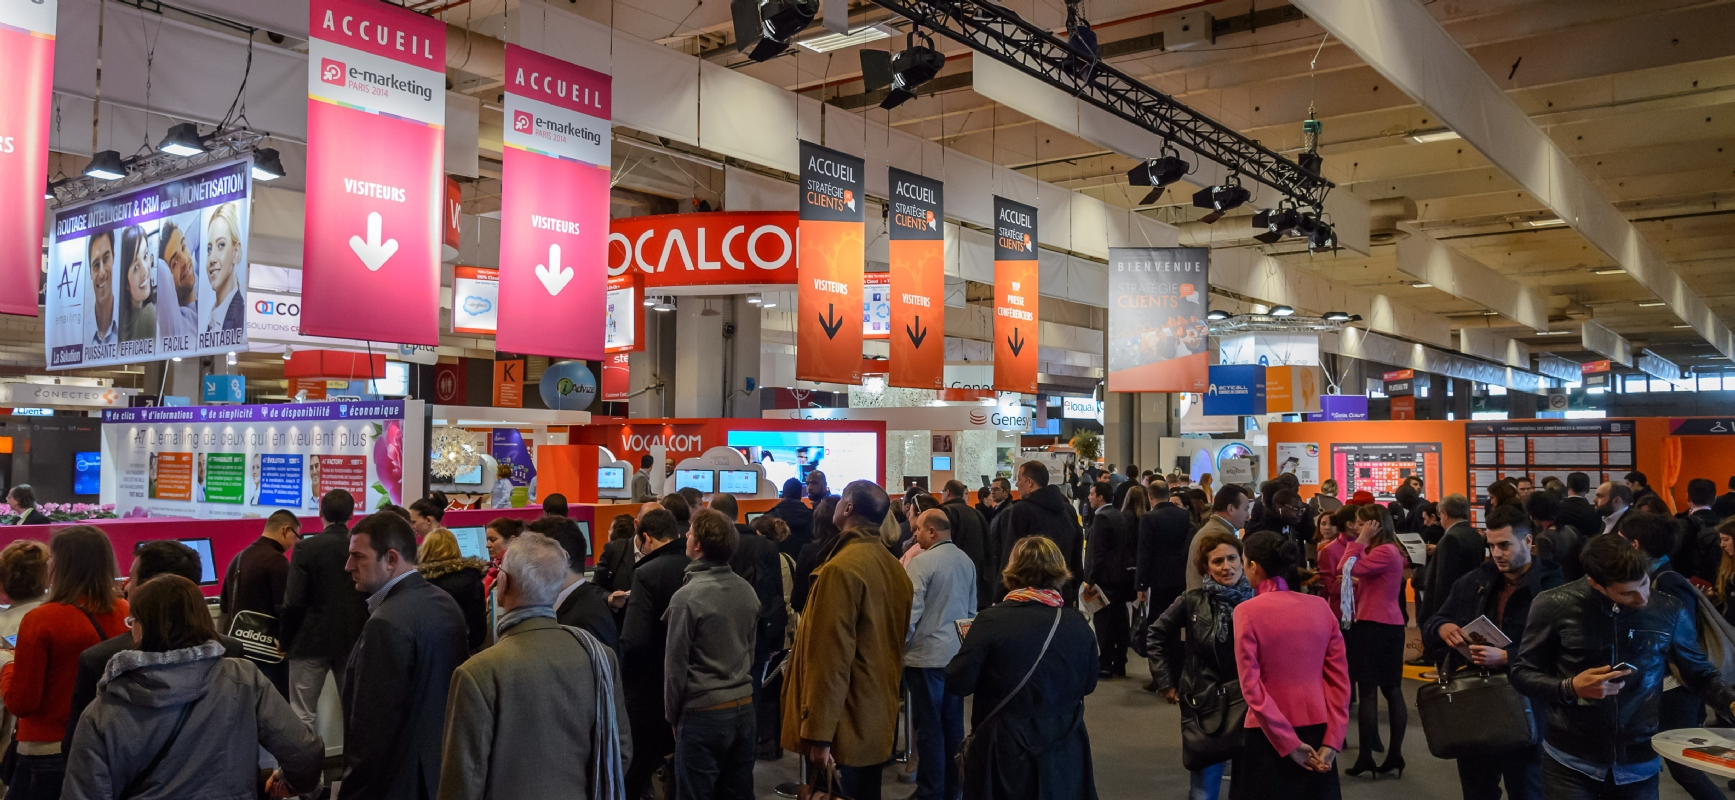 Salon e marketing paris 2016 les 5 conf rences ne pas - Salon emarketing paris ...